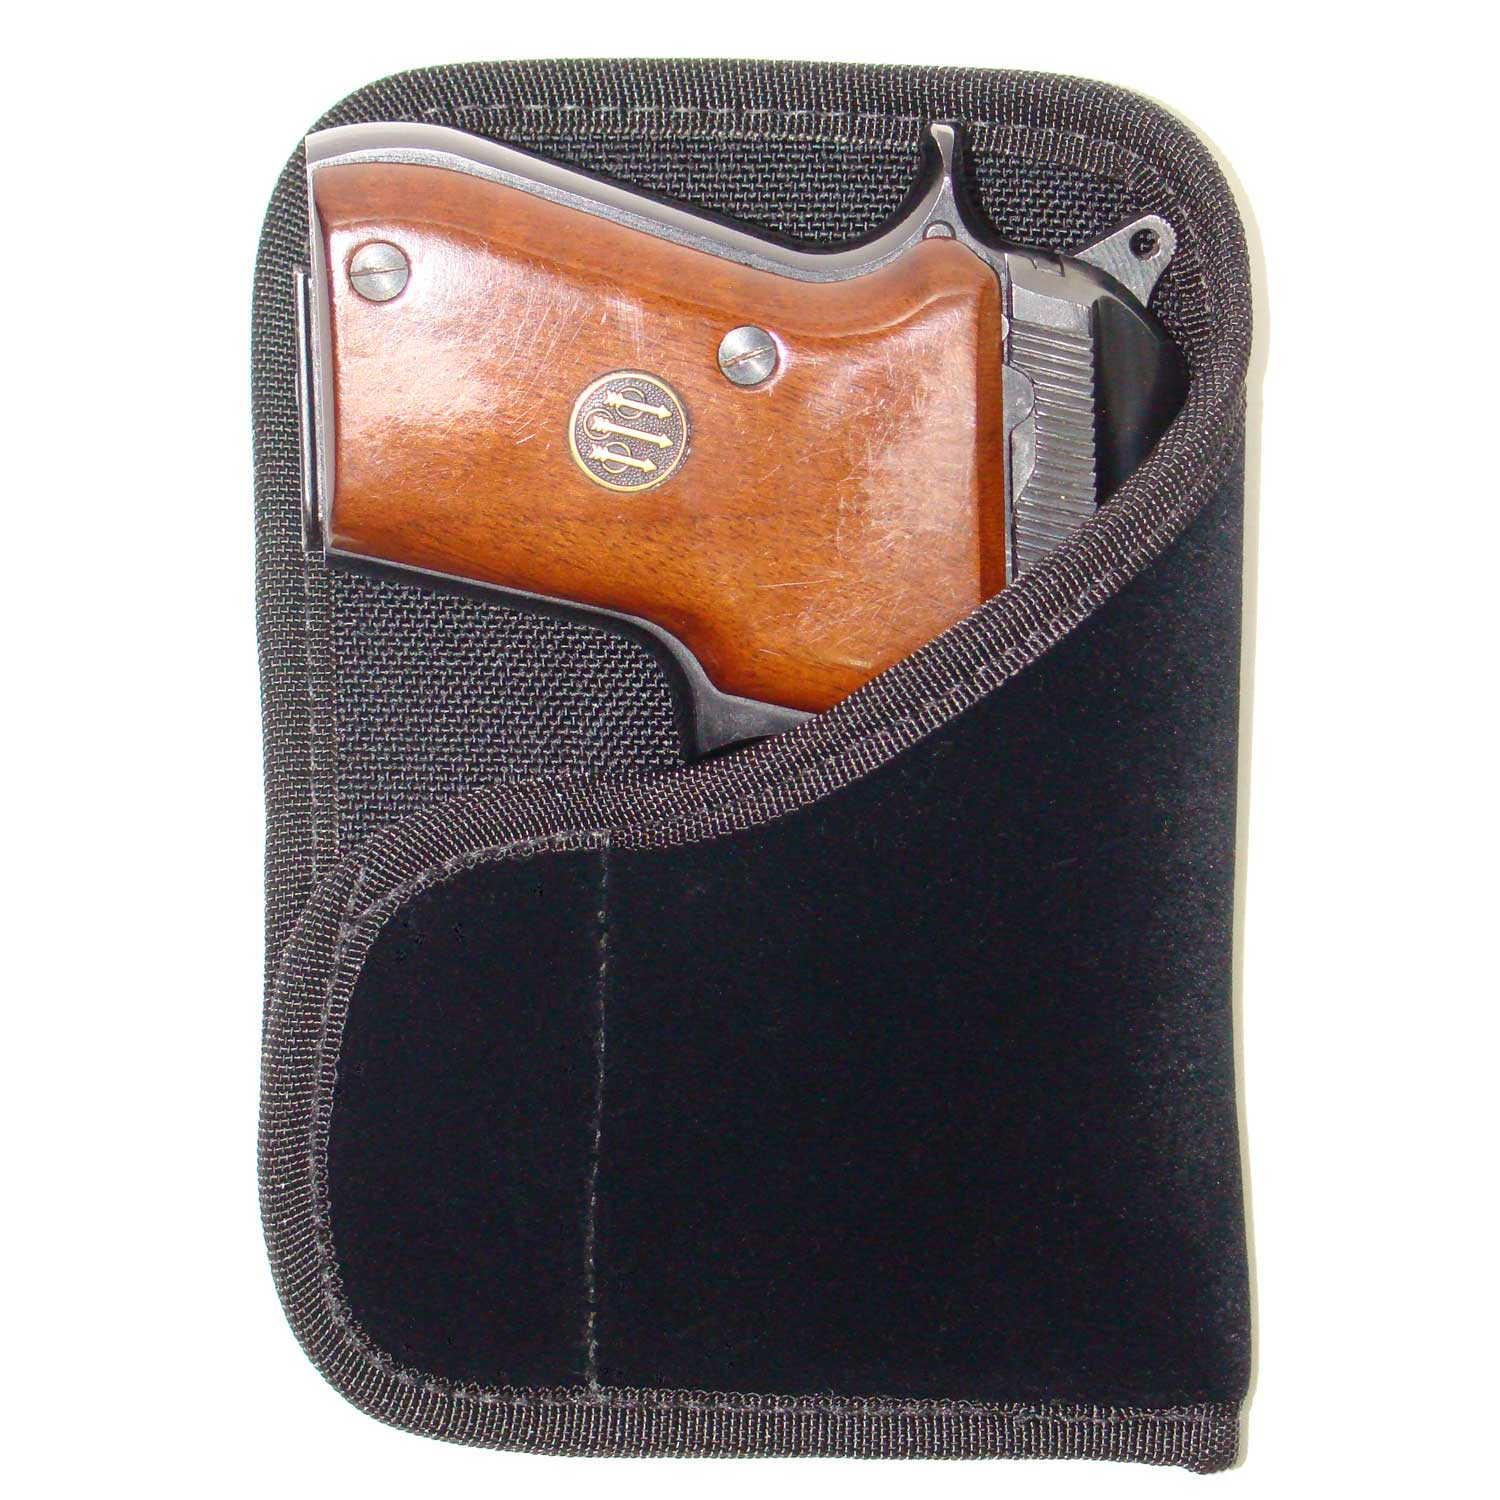 Wallet Concealment Holster for Concealed Carry